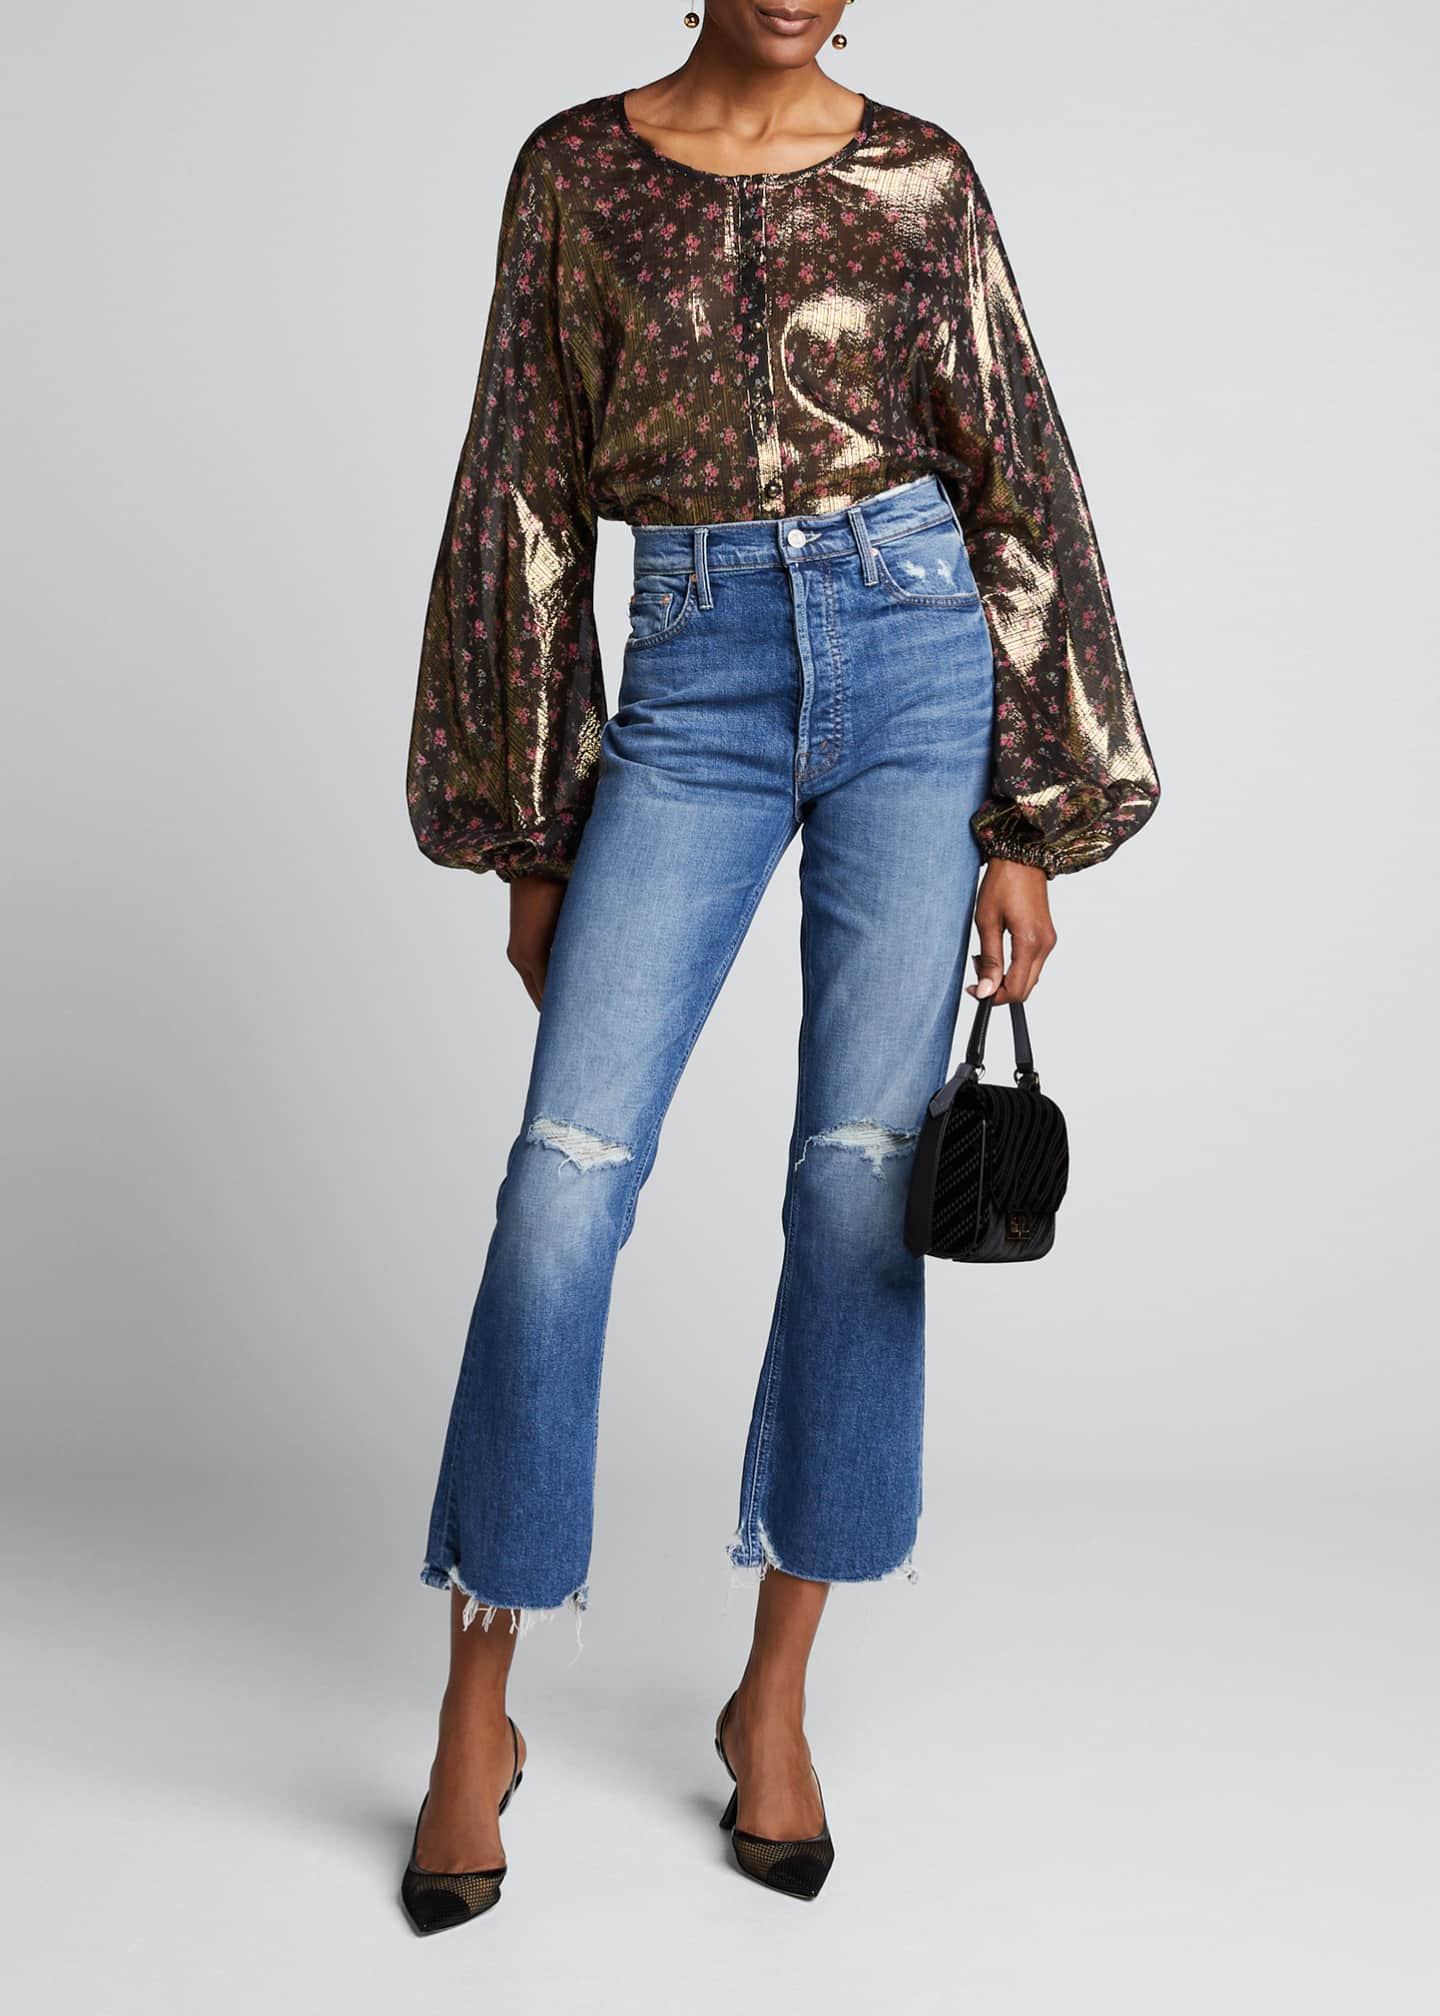 LoveShackFancy Adeline Floral Print Metallic-Silk Puff-Sleeve Top